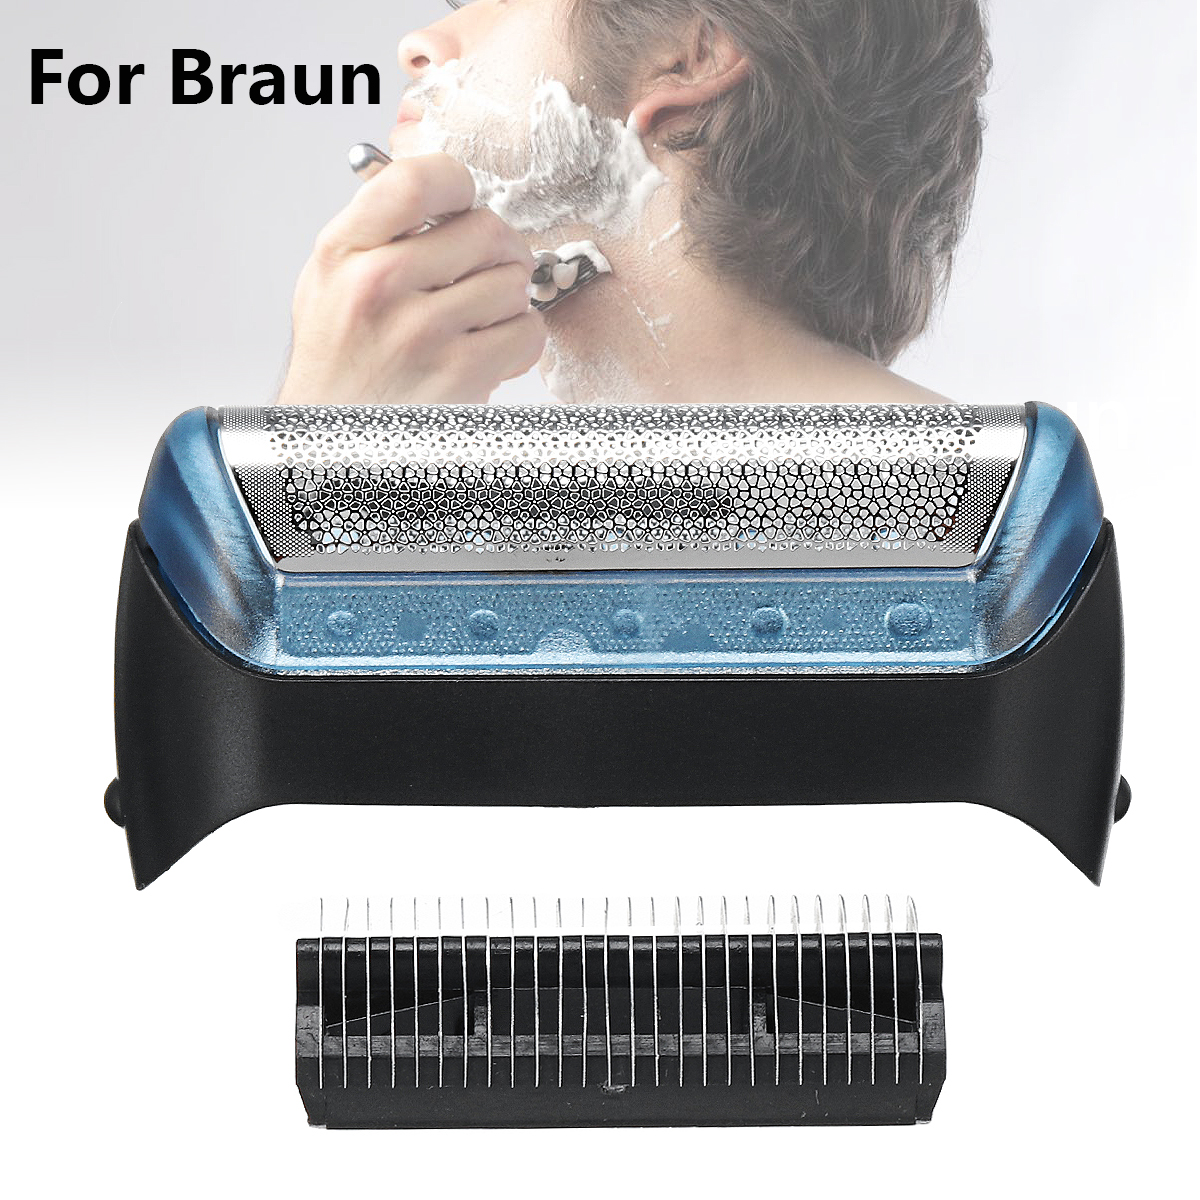 Shaver Foil Blade Replacement For BRAUN 10B 20B 20S Personal Care Parts 2 Choice Cutter Blade Shaver Replacement Foil Best Price